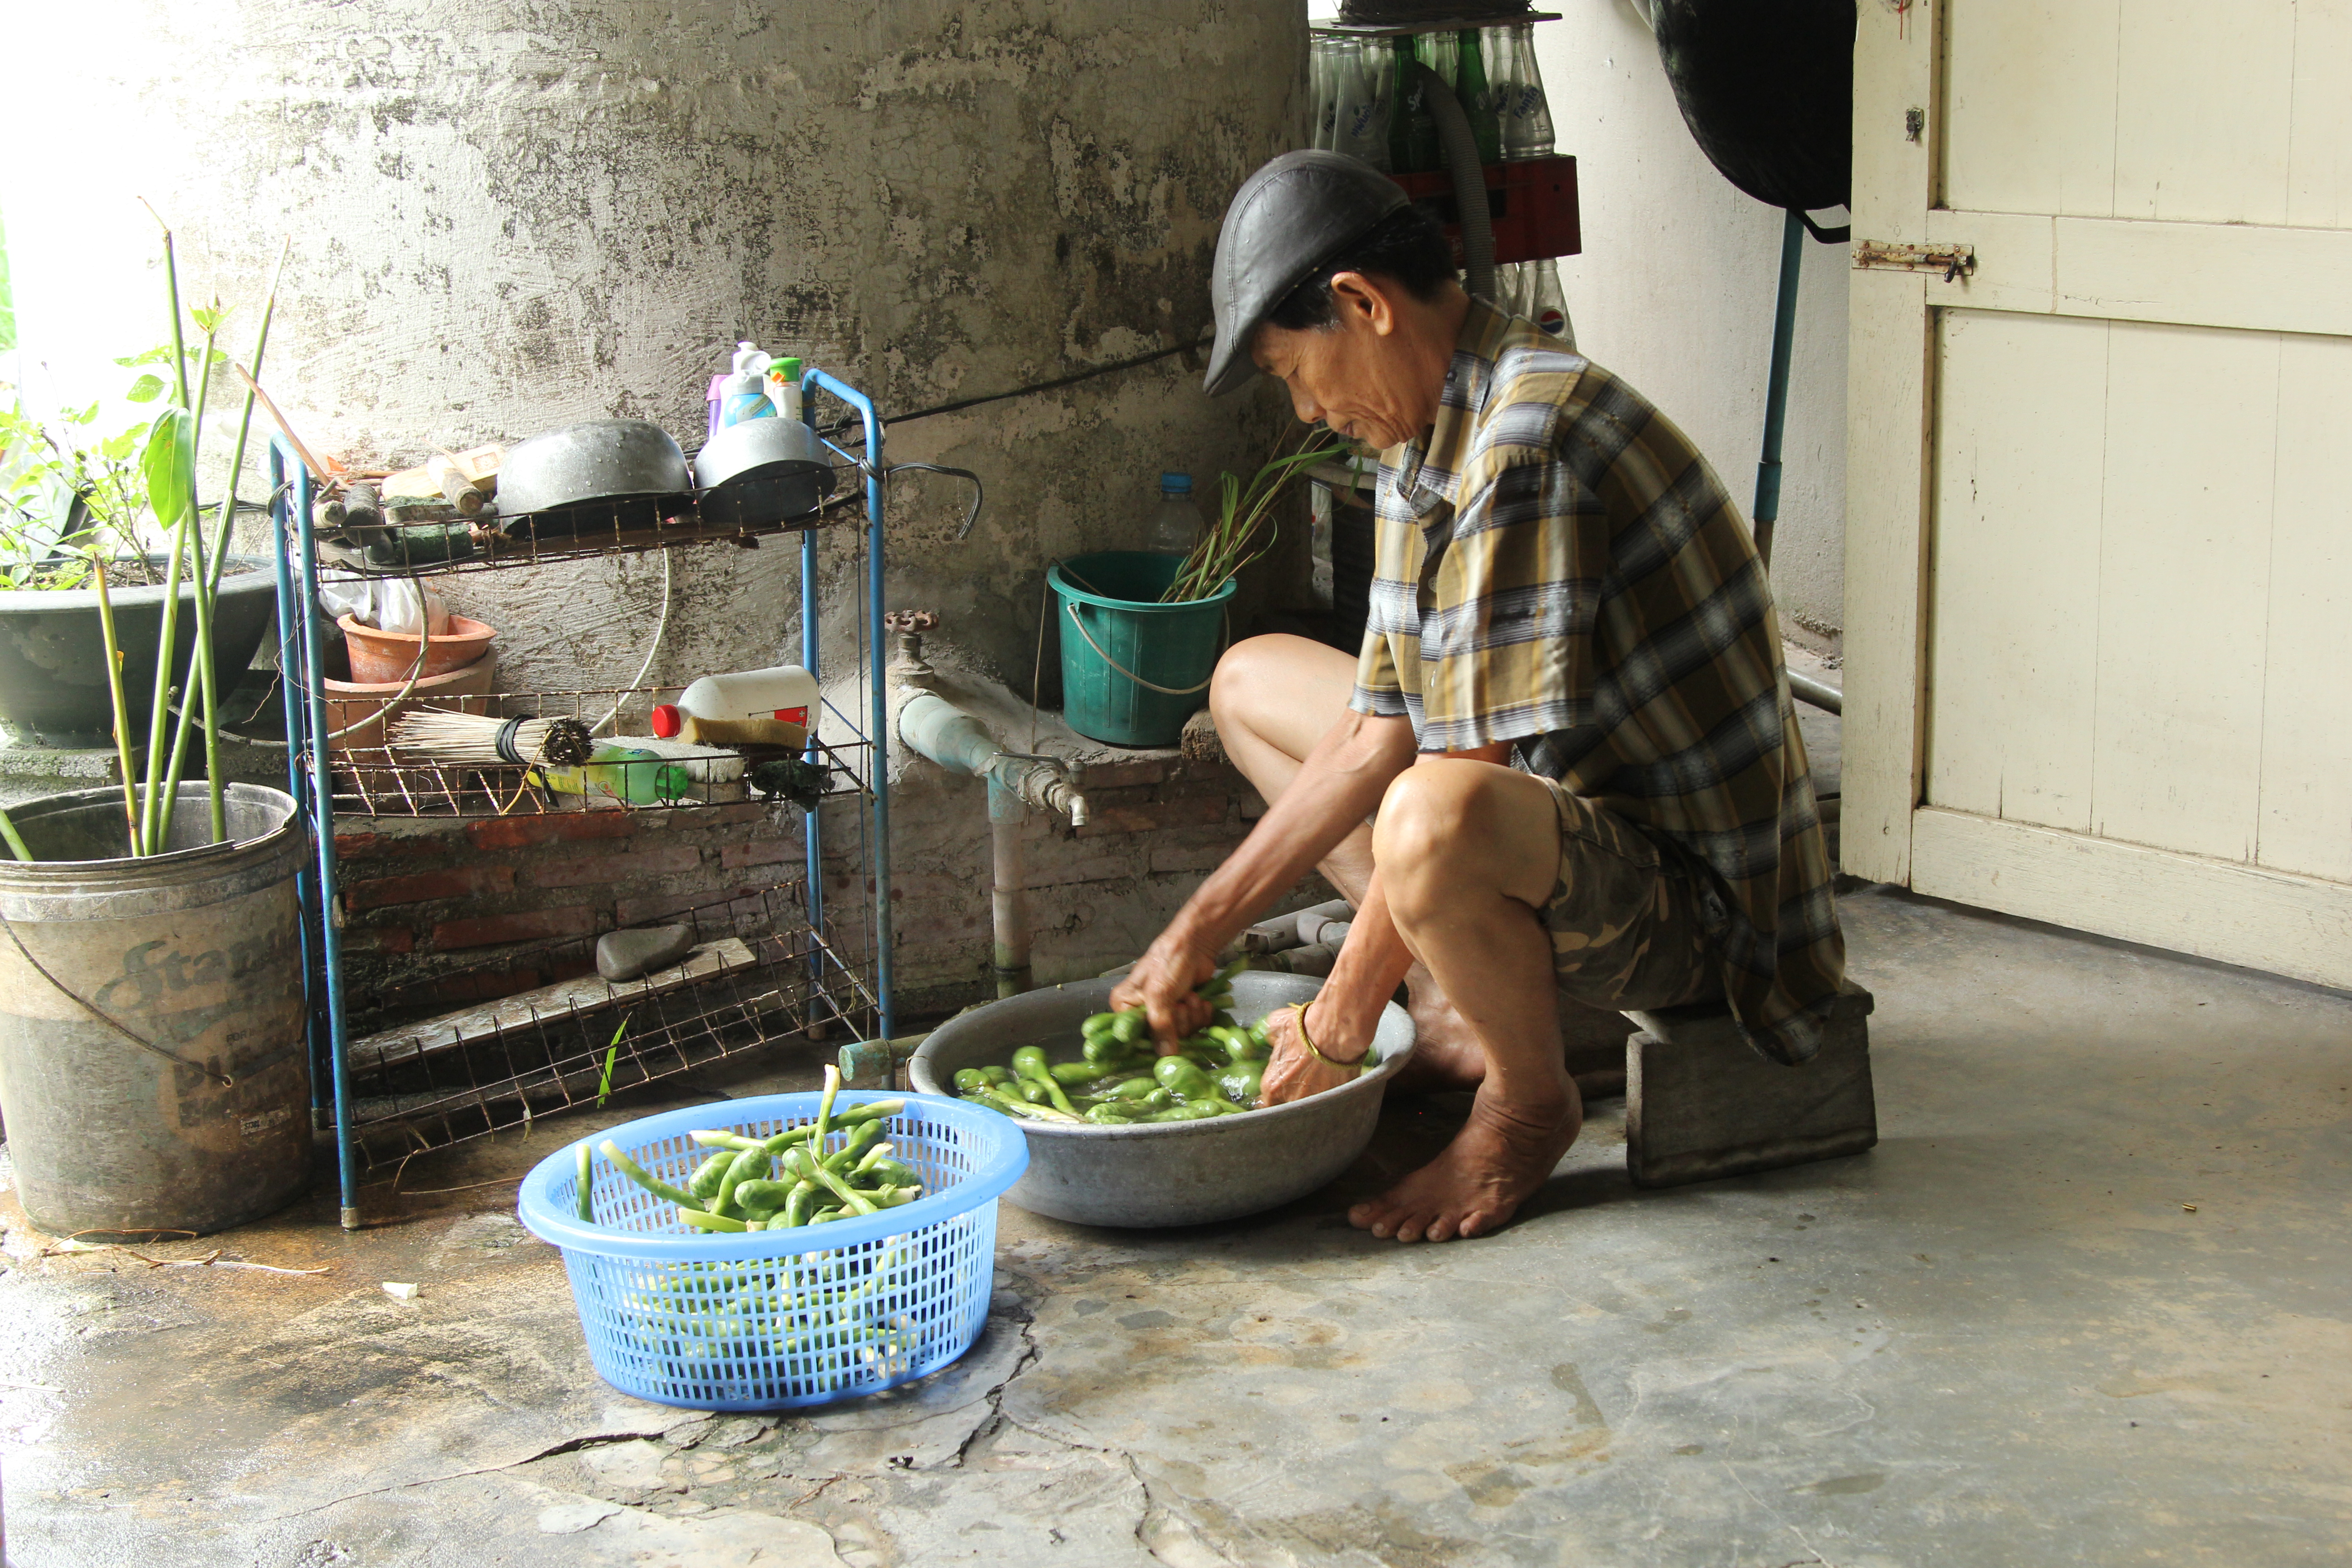 Nangsao Chonghaanotai washes vegetables in Map Ta Phut, Thailand, where residents are unable to easily access information about whether their water is safe for irrigation, drinking, or other uses. (Laura Villadiego)